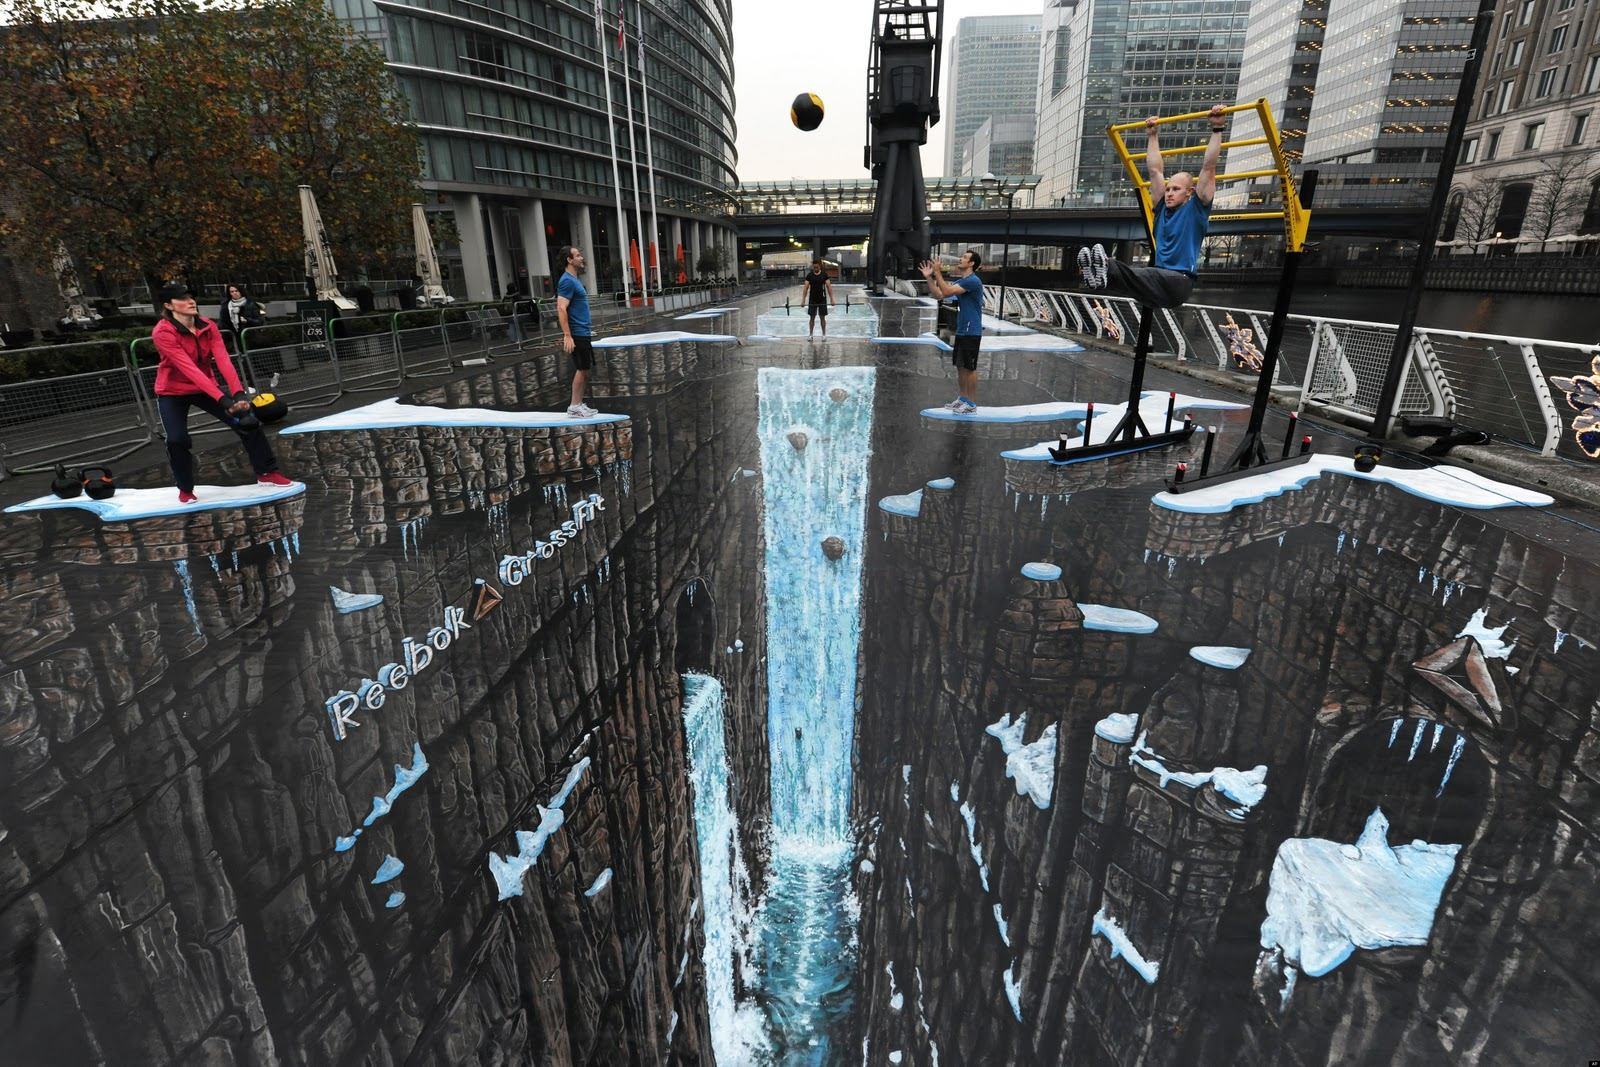 3D Street Mural world's largest 3D painting